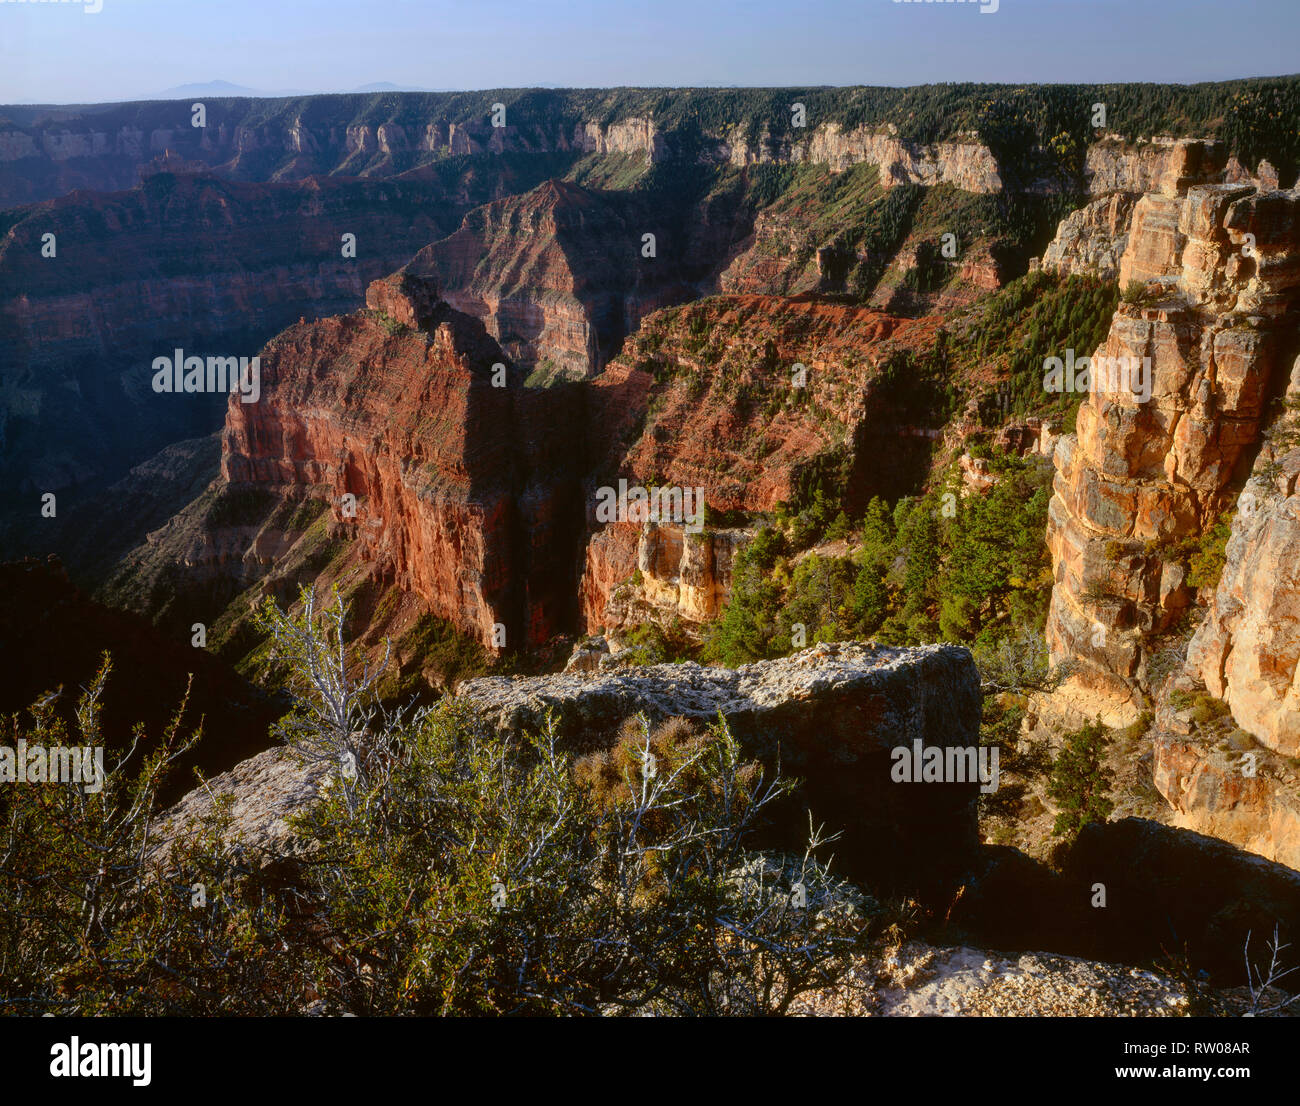 USA, Arizona, Grand Canyon National Park, North Rim, View south from Point Imperial towards canyon depths and flat topped Walhalla Plateau. - Stock Image